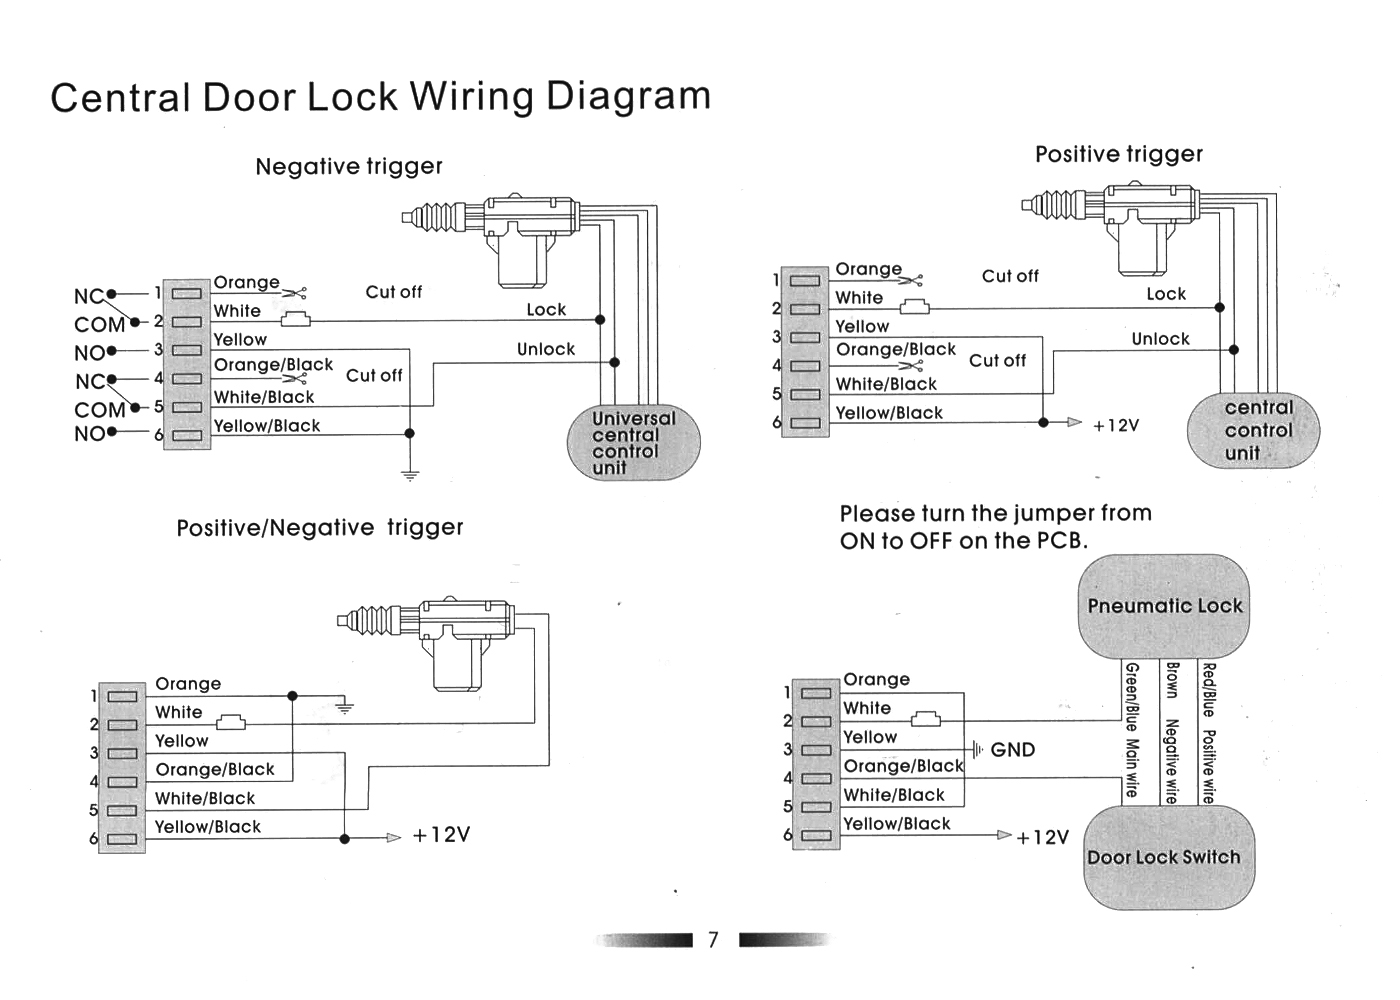 spy central locking wiring diagram simple wiring diagramspy central locking wiring diagram simple wiring diagram schema morning glory diagram mazda 323 central locking